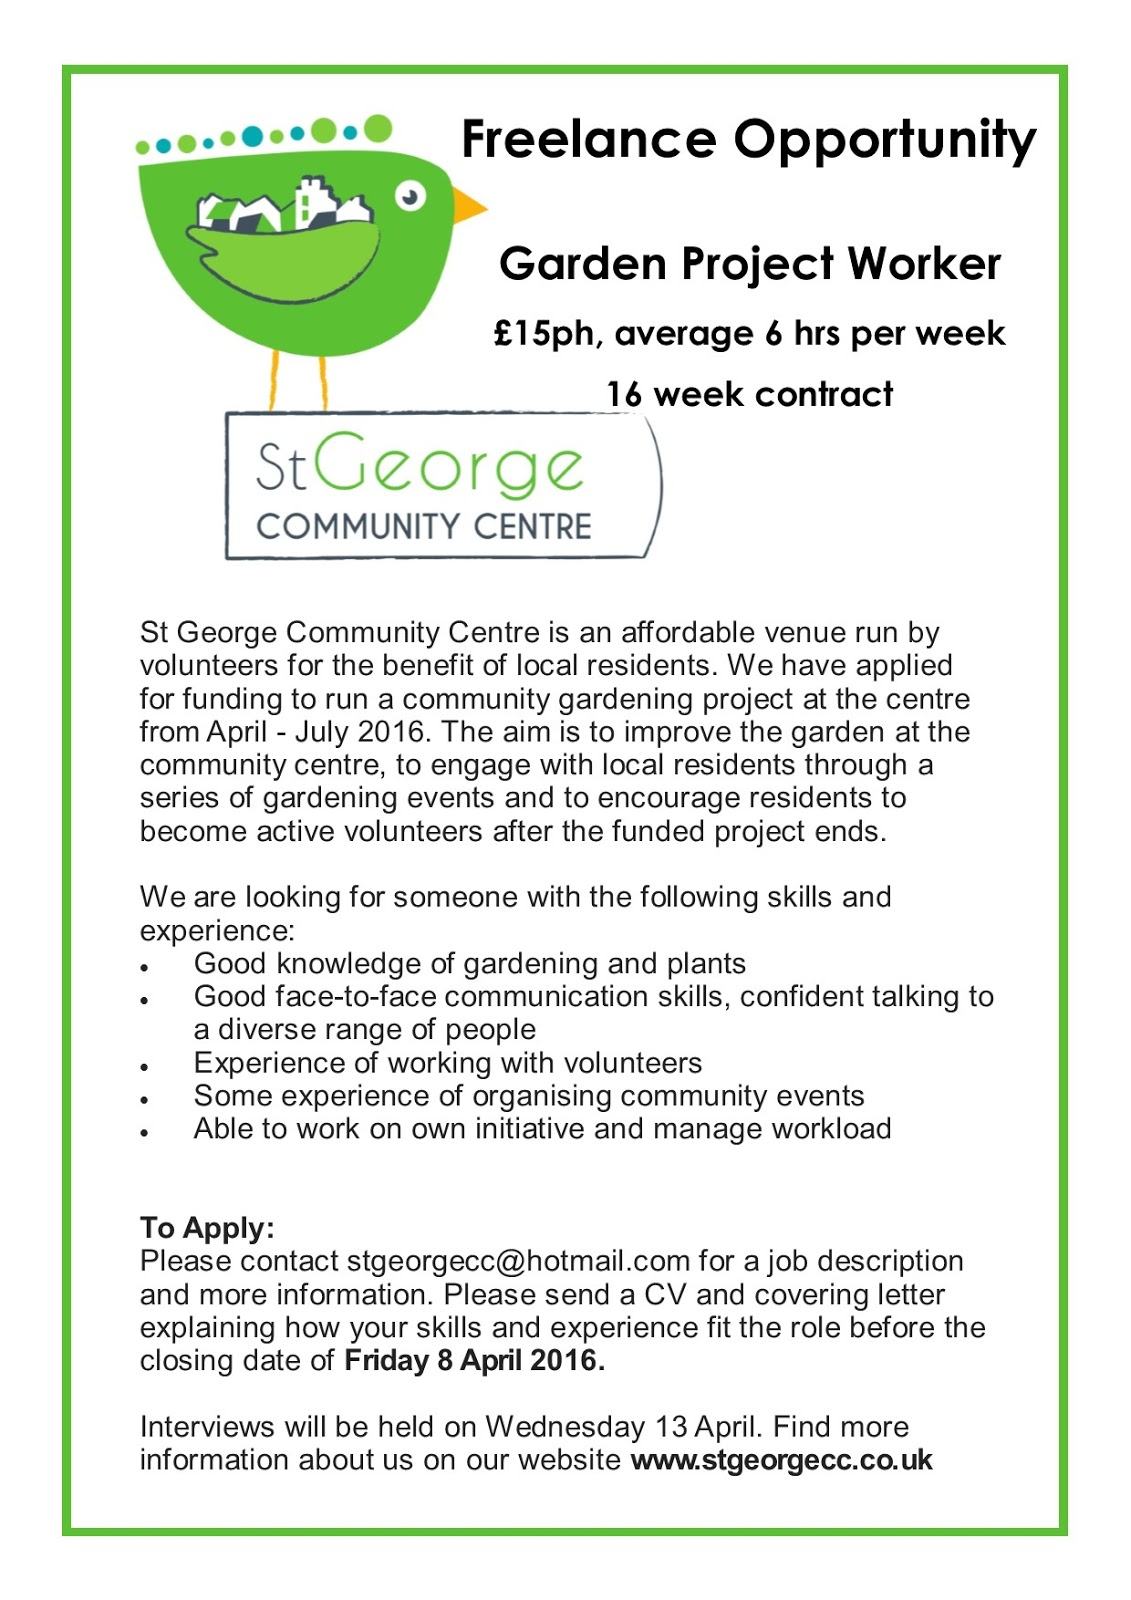 st george community centre lance opportunity